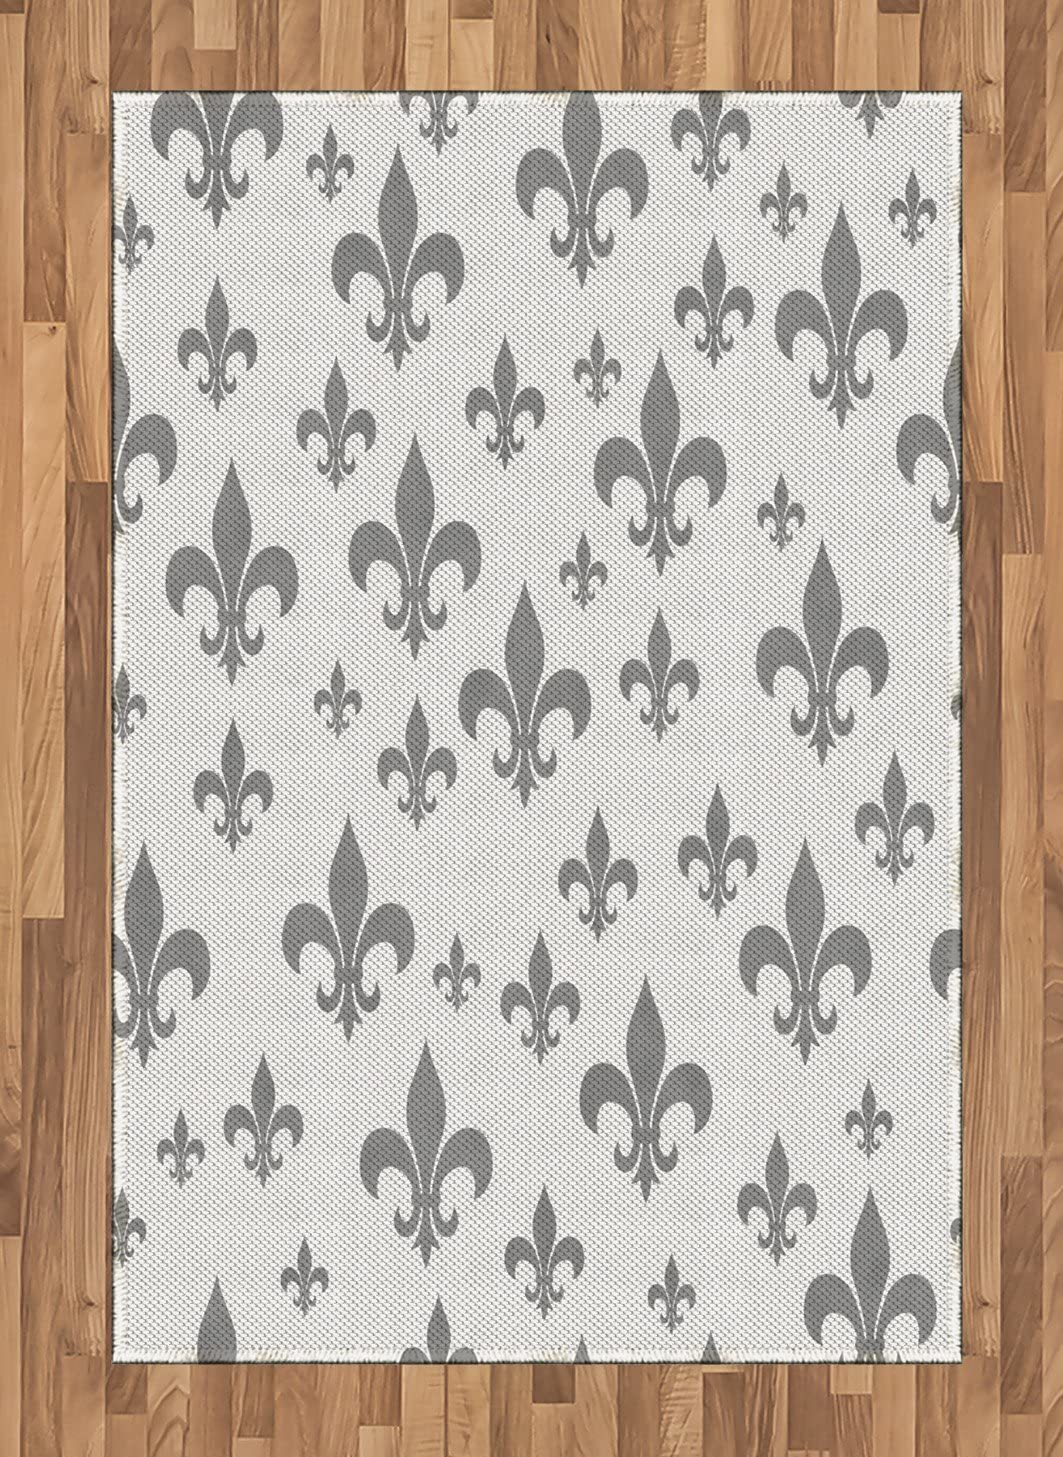 Ambesonne Fleur De Lis Area Rug, Lily Pattern Classic Retro Royal Vintage European Iris Ornamental Artwork, Flat Woven Accent Rug for Living Room Bedroom Dining Room, 4' X 5.7', Grey